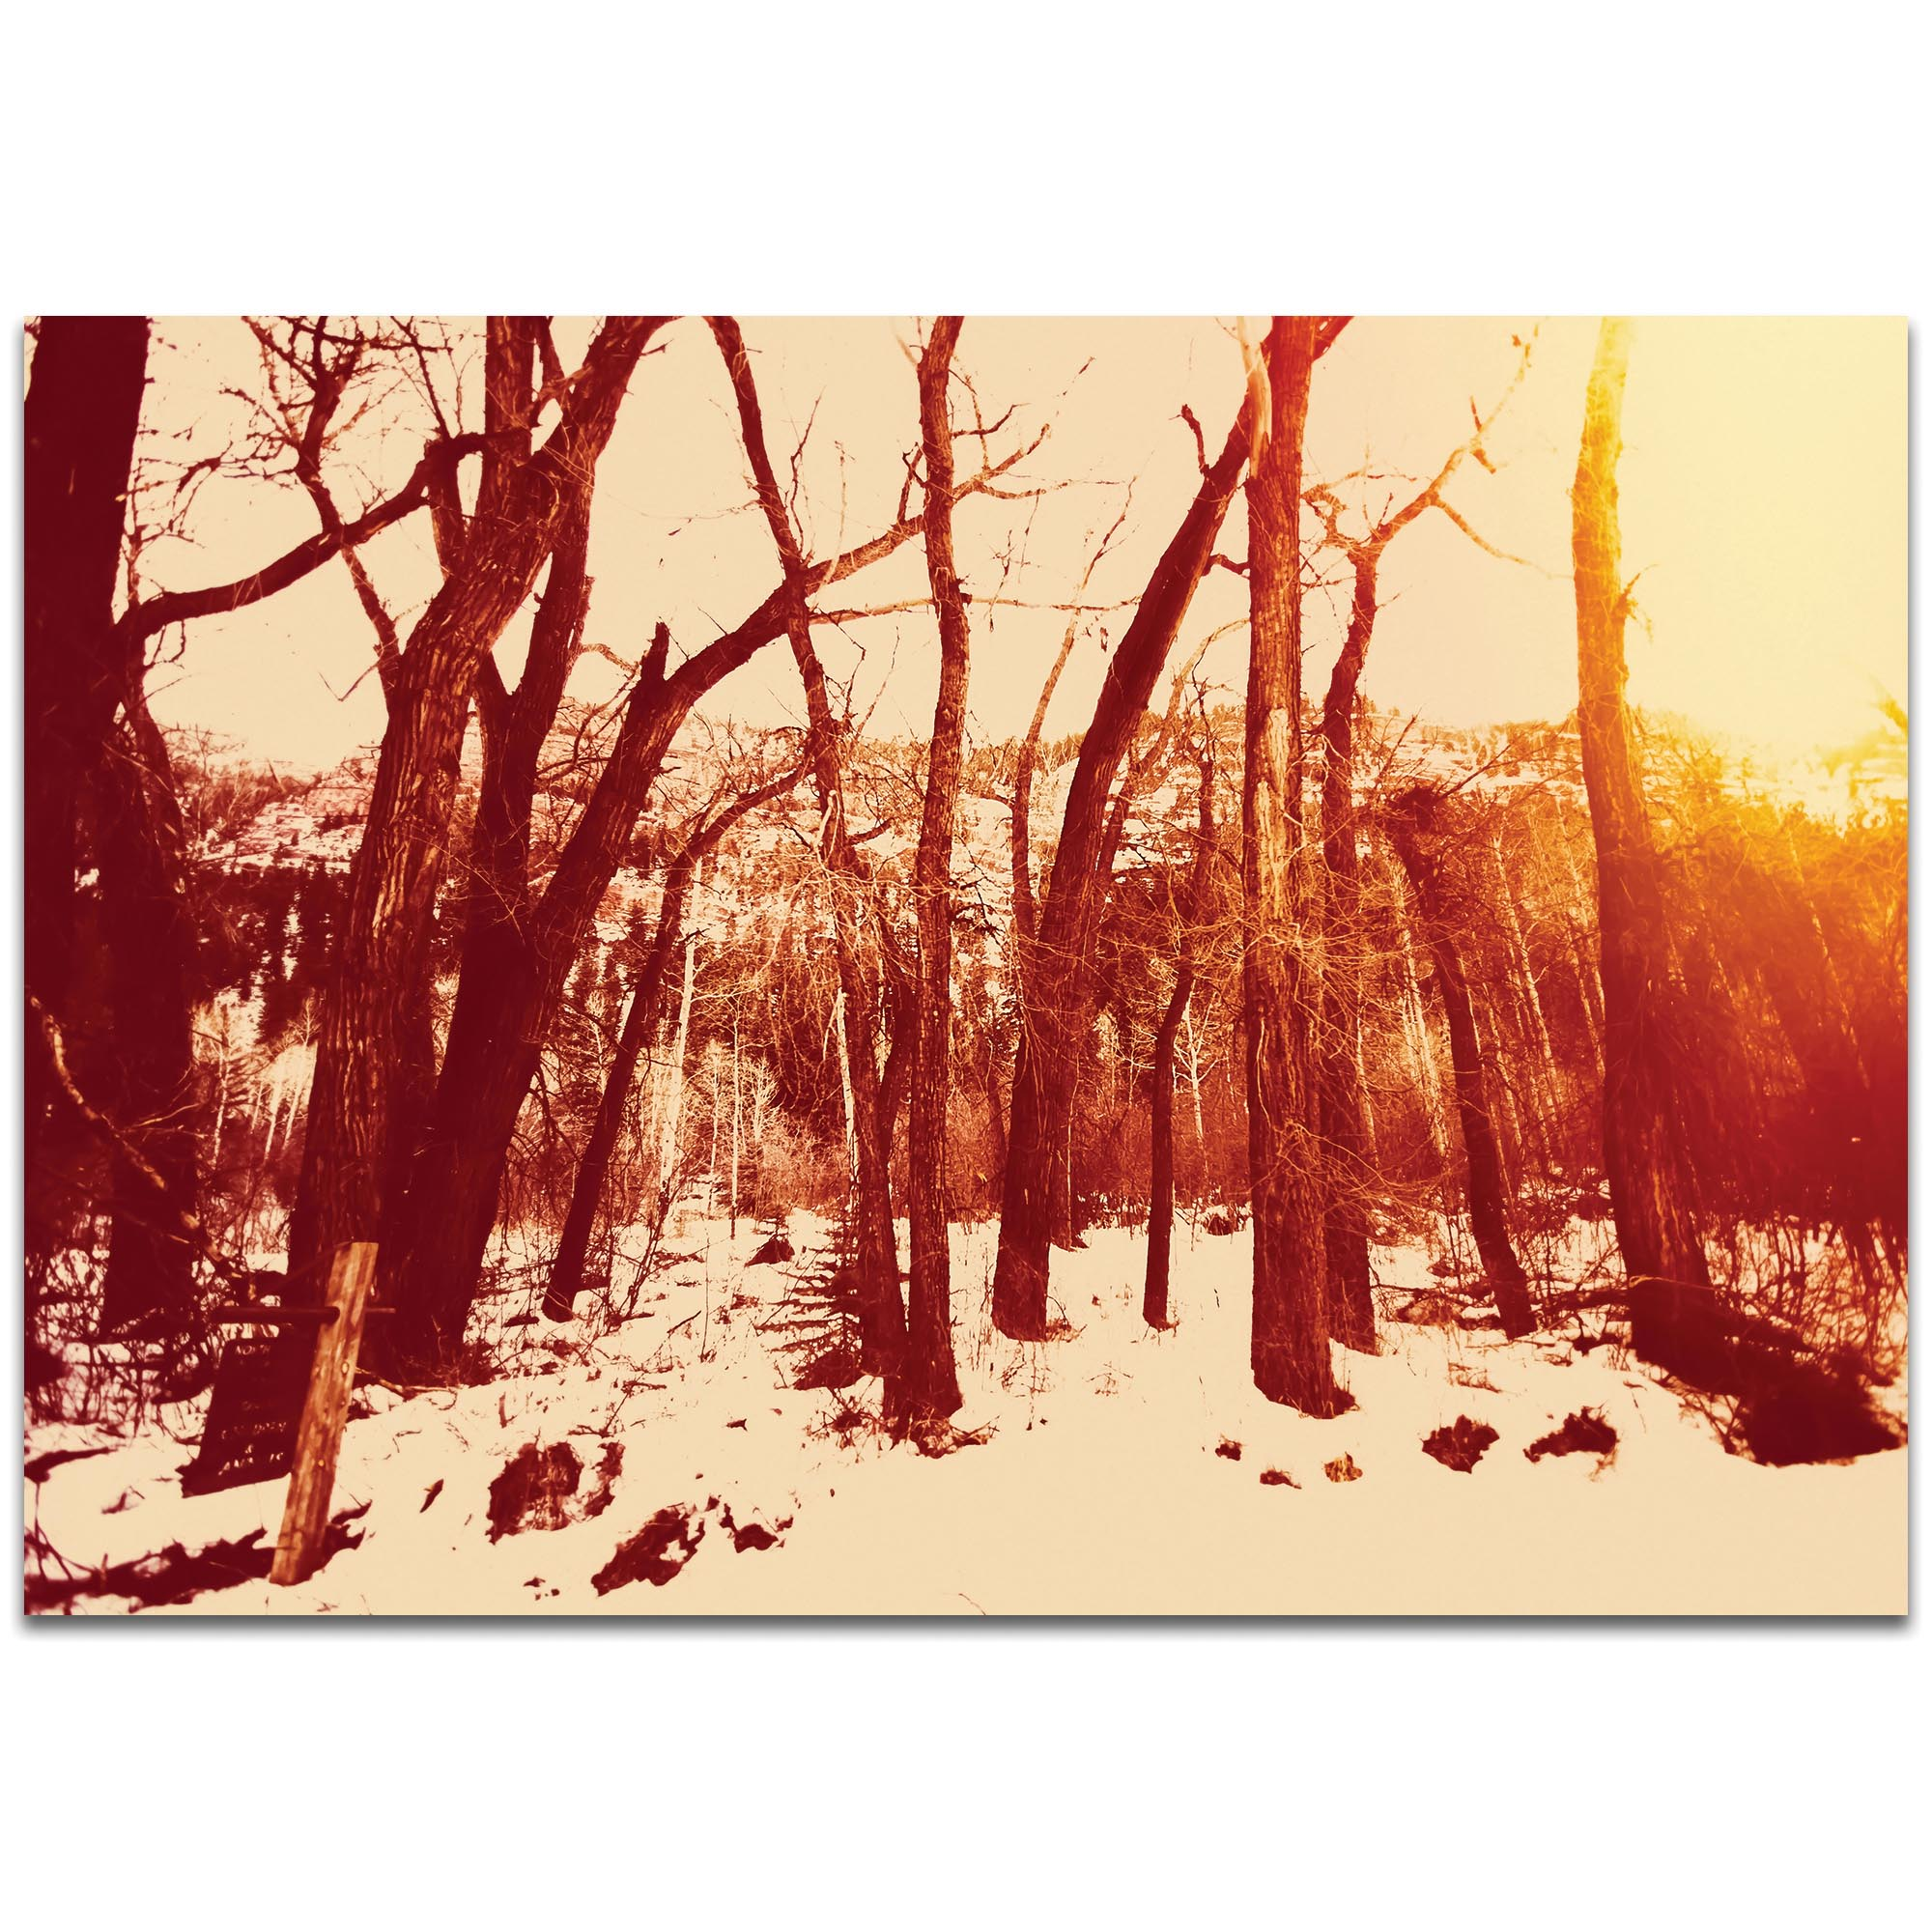 Landscape Photography 'Sepia Snowfall' - Winter Trees Art on Metal or Plexiglass